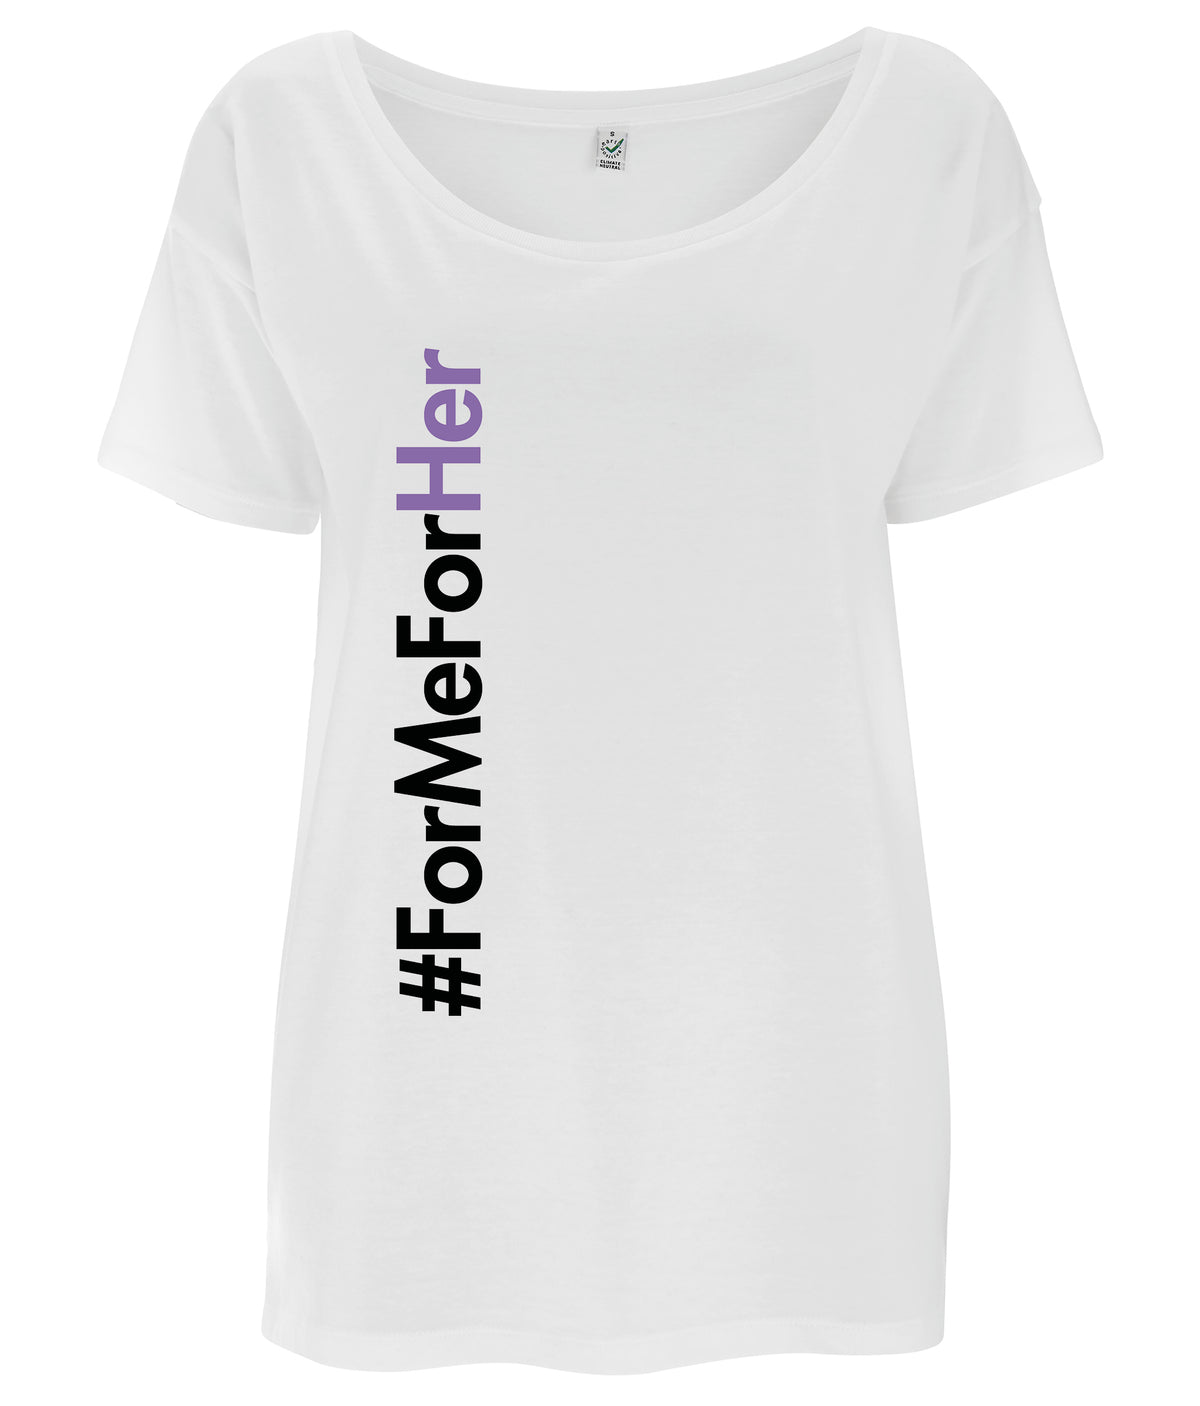 #ForMeForHer Tencel Blend Oversized Feminist T Shirt White